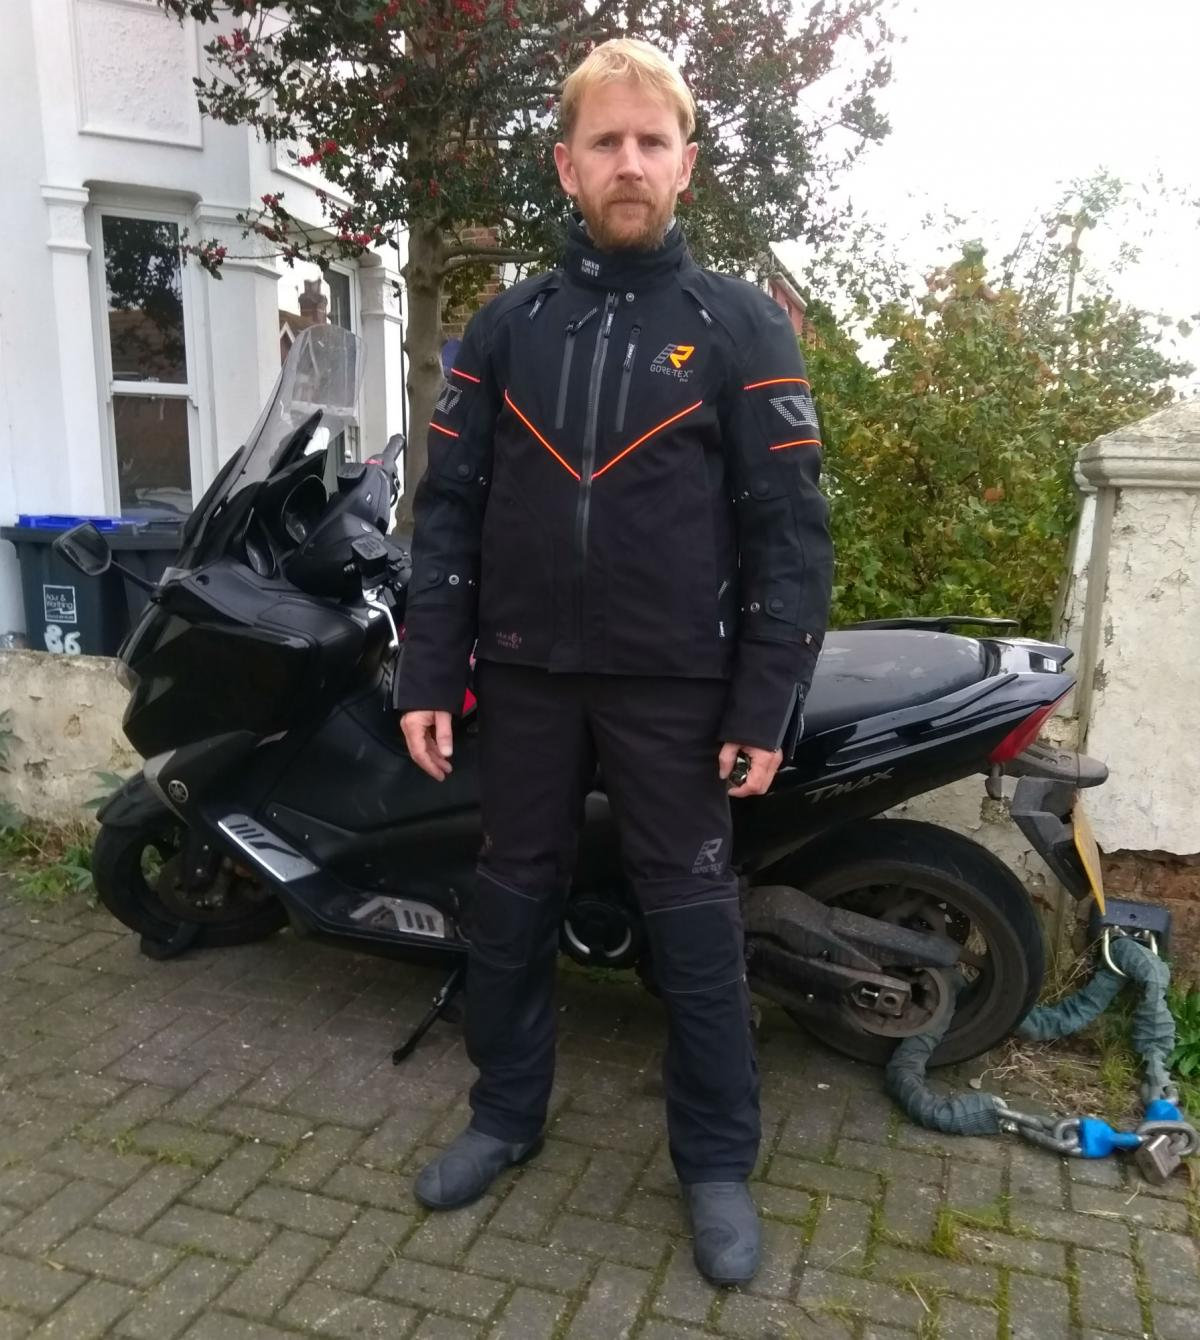 Rukka Nivala Gore-Tex jacket and trousers review